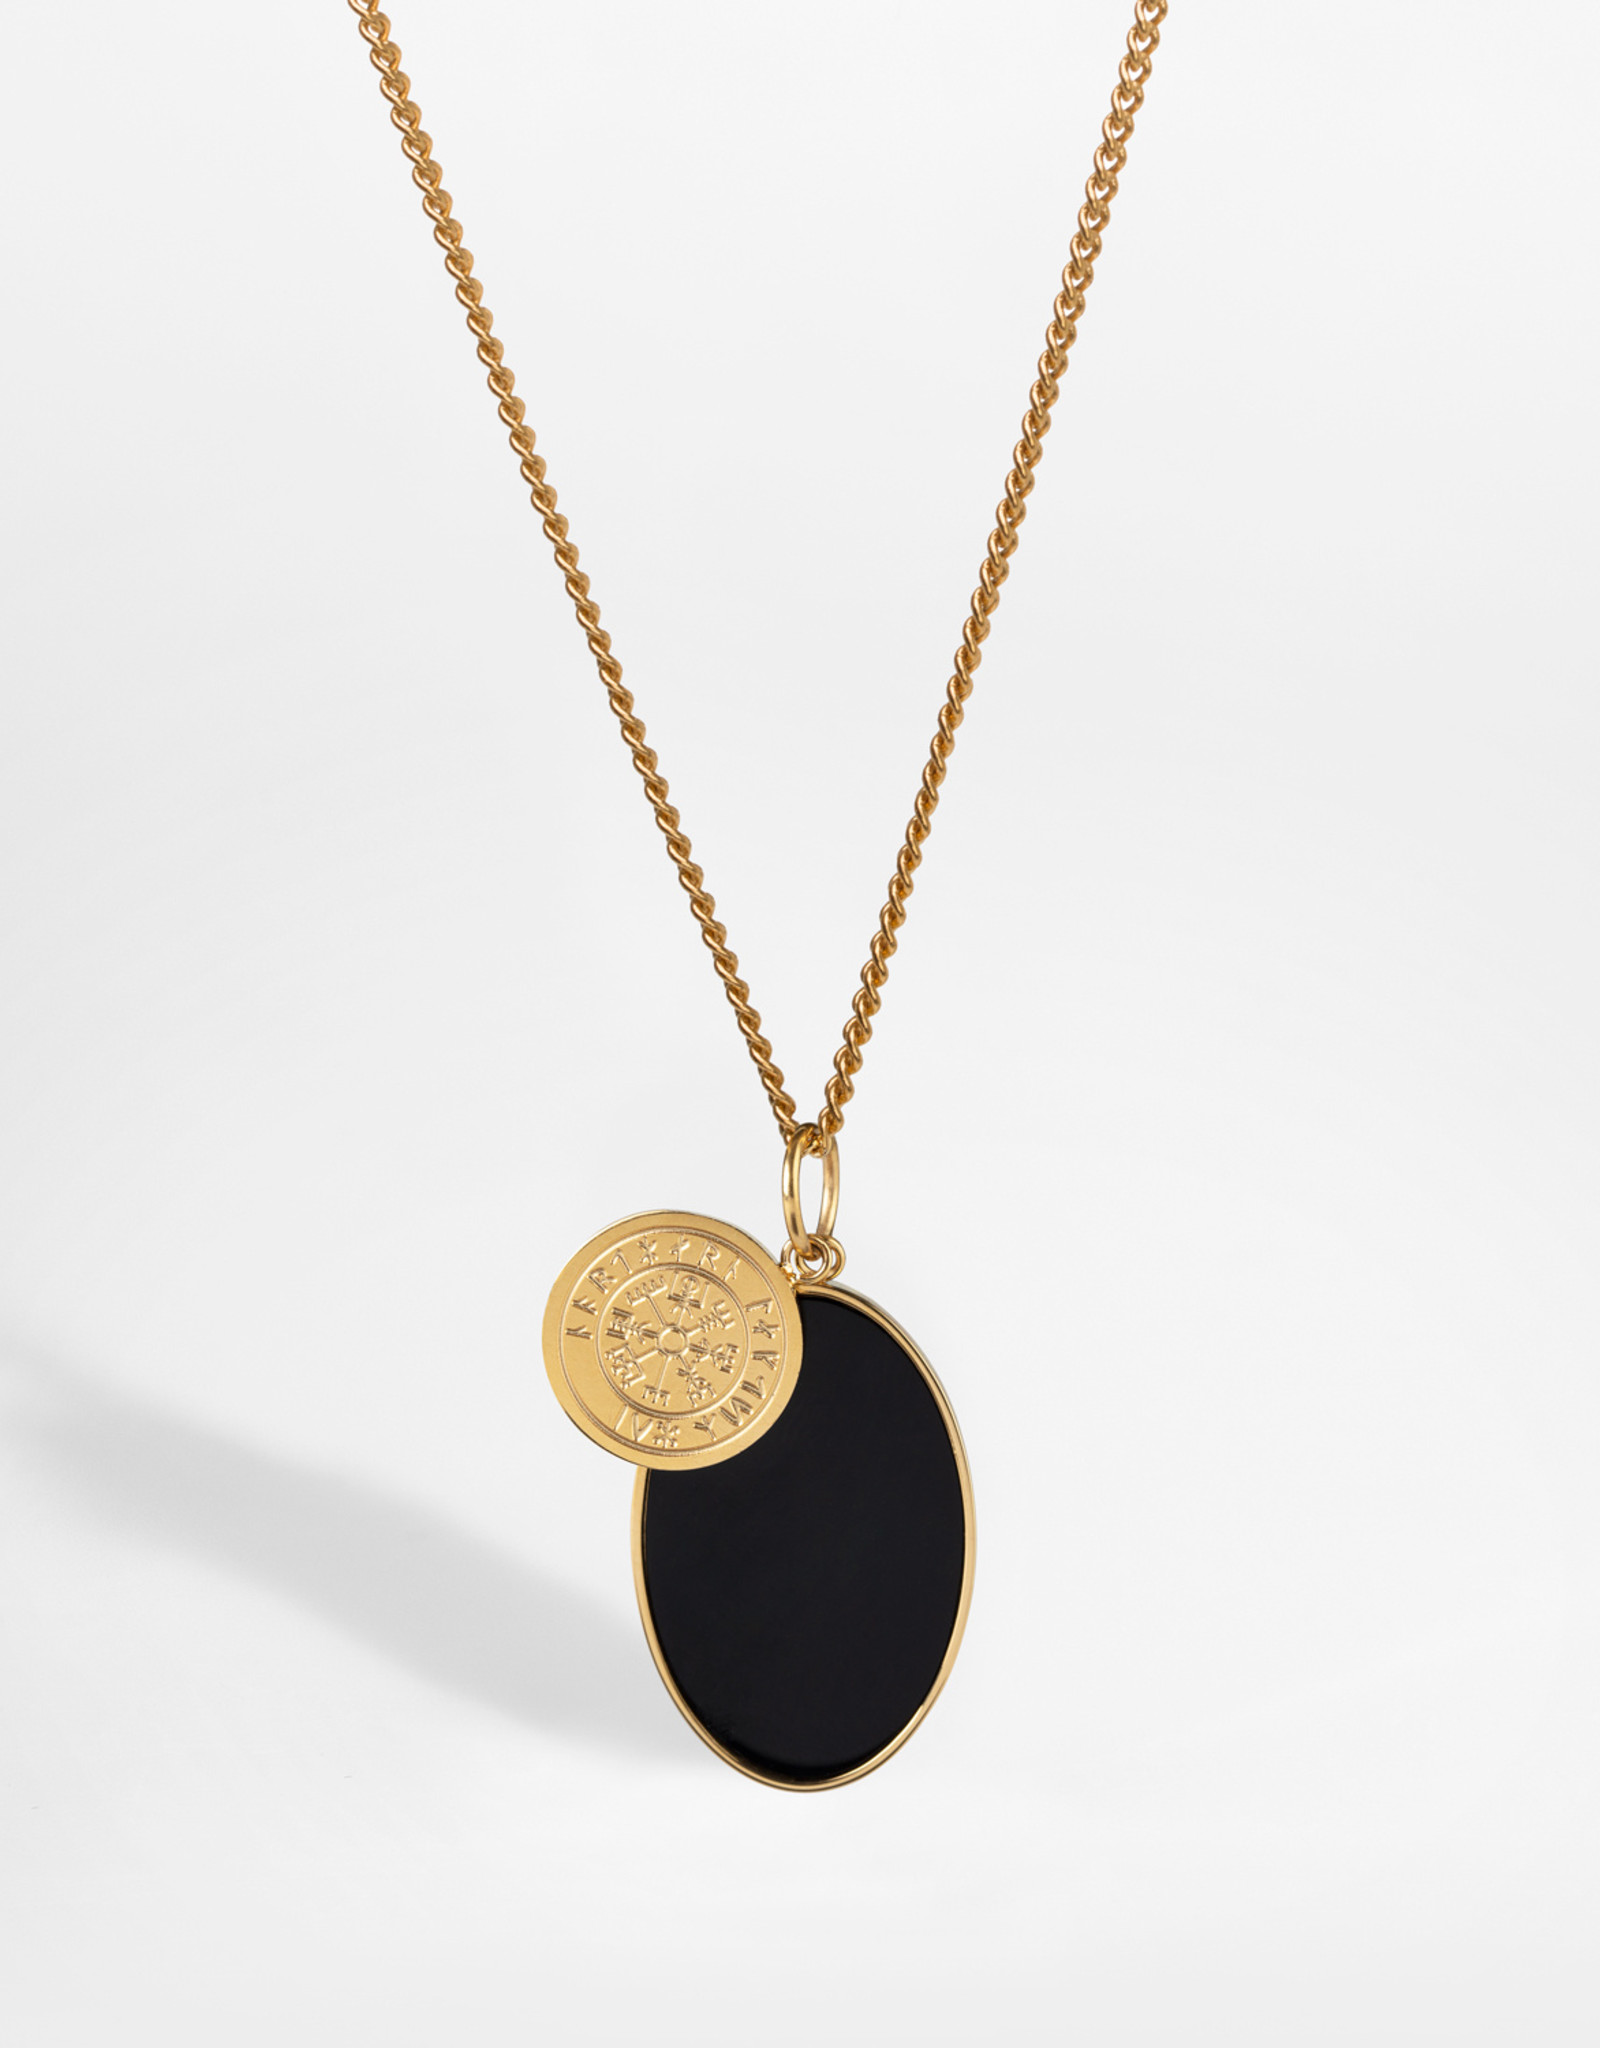 Northern Legacy nl vigvisir/onxy necklace - gold